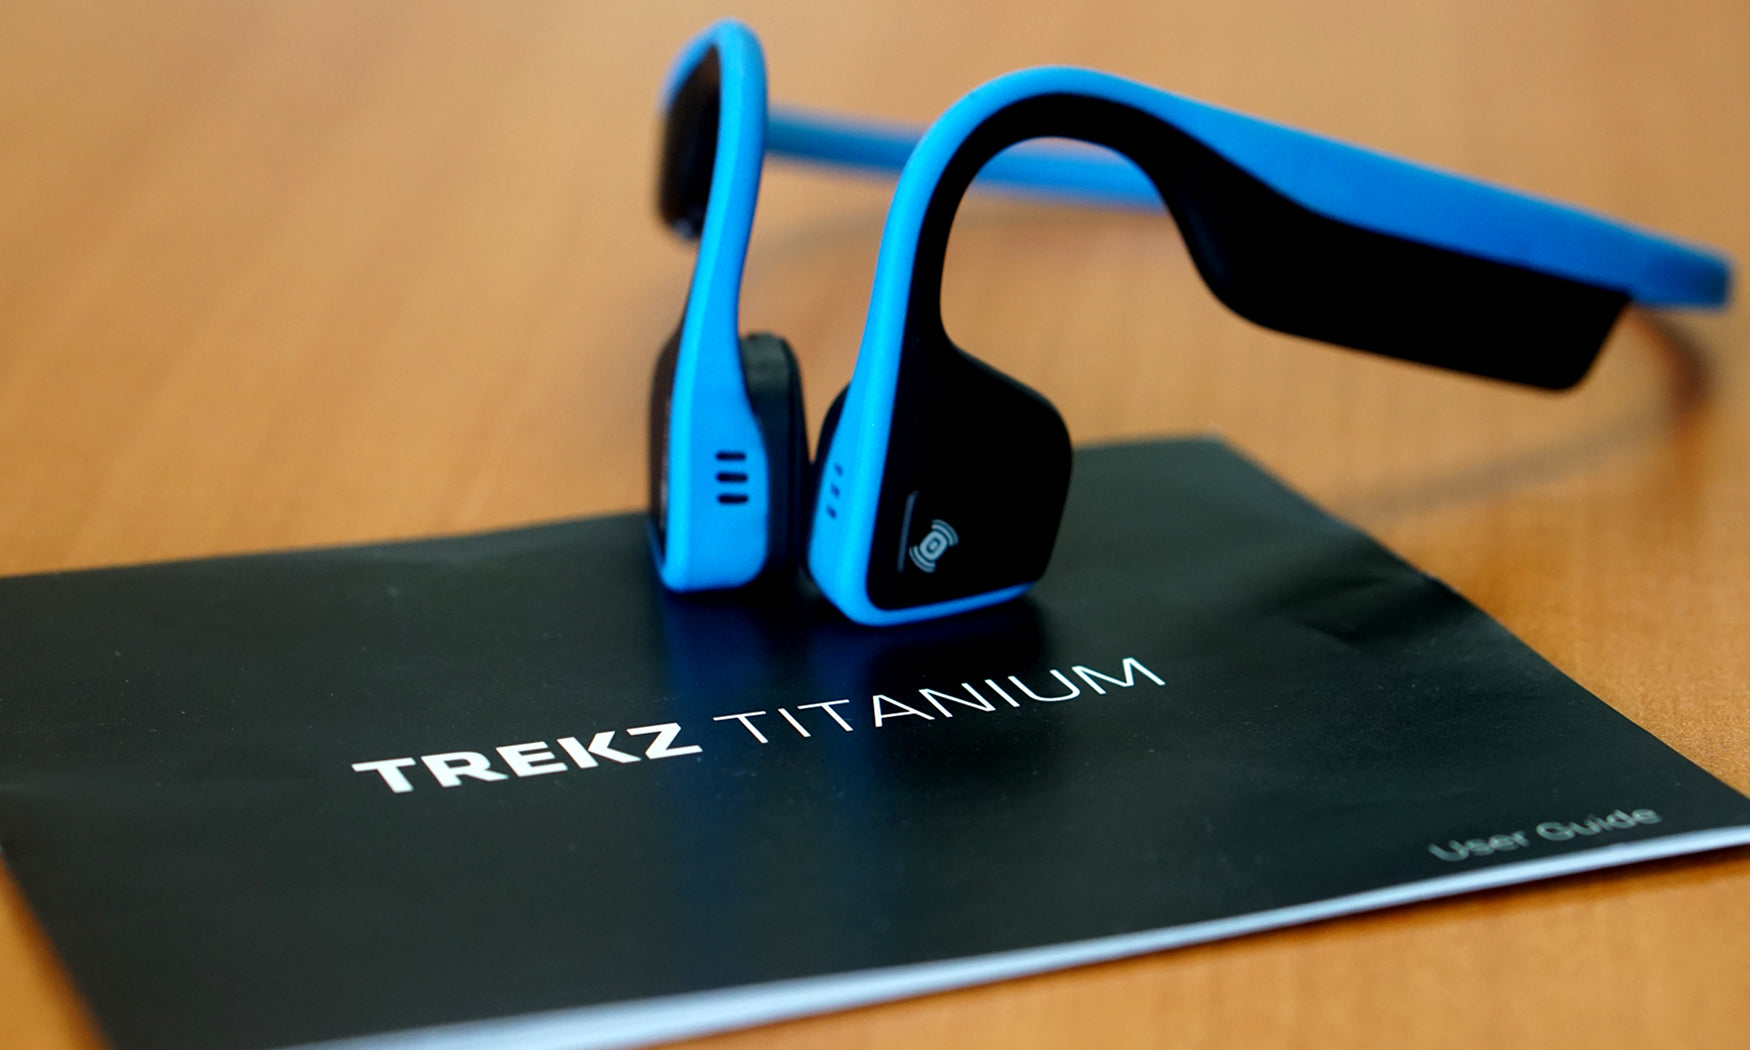 Where To Find An AfterShokz User Guide